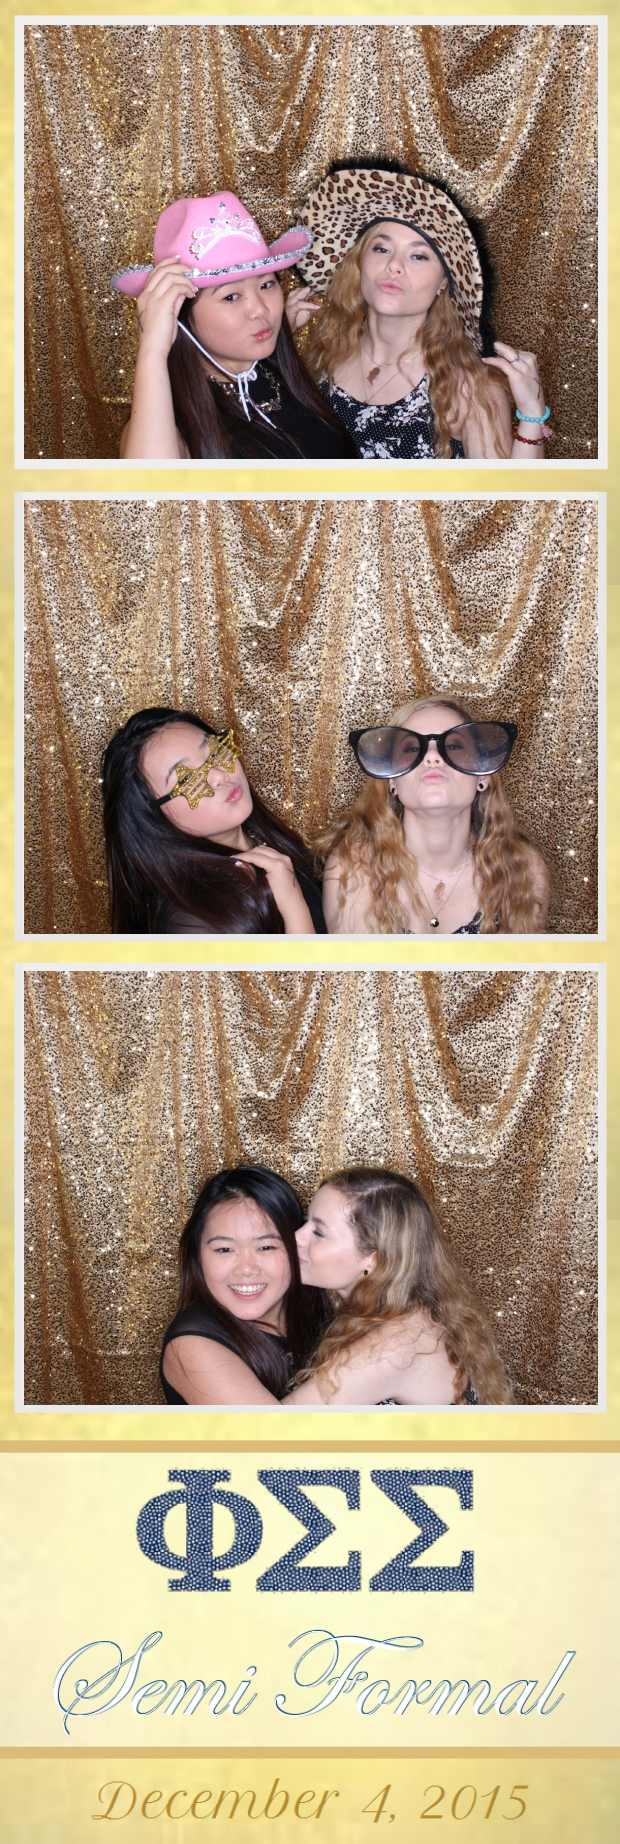 Guest House Events Photo Booth Phi Sigma Sigma Semi Formal (83).jpg